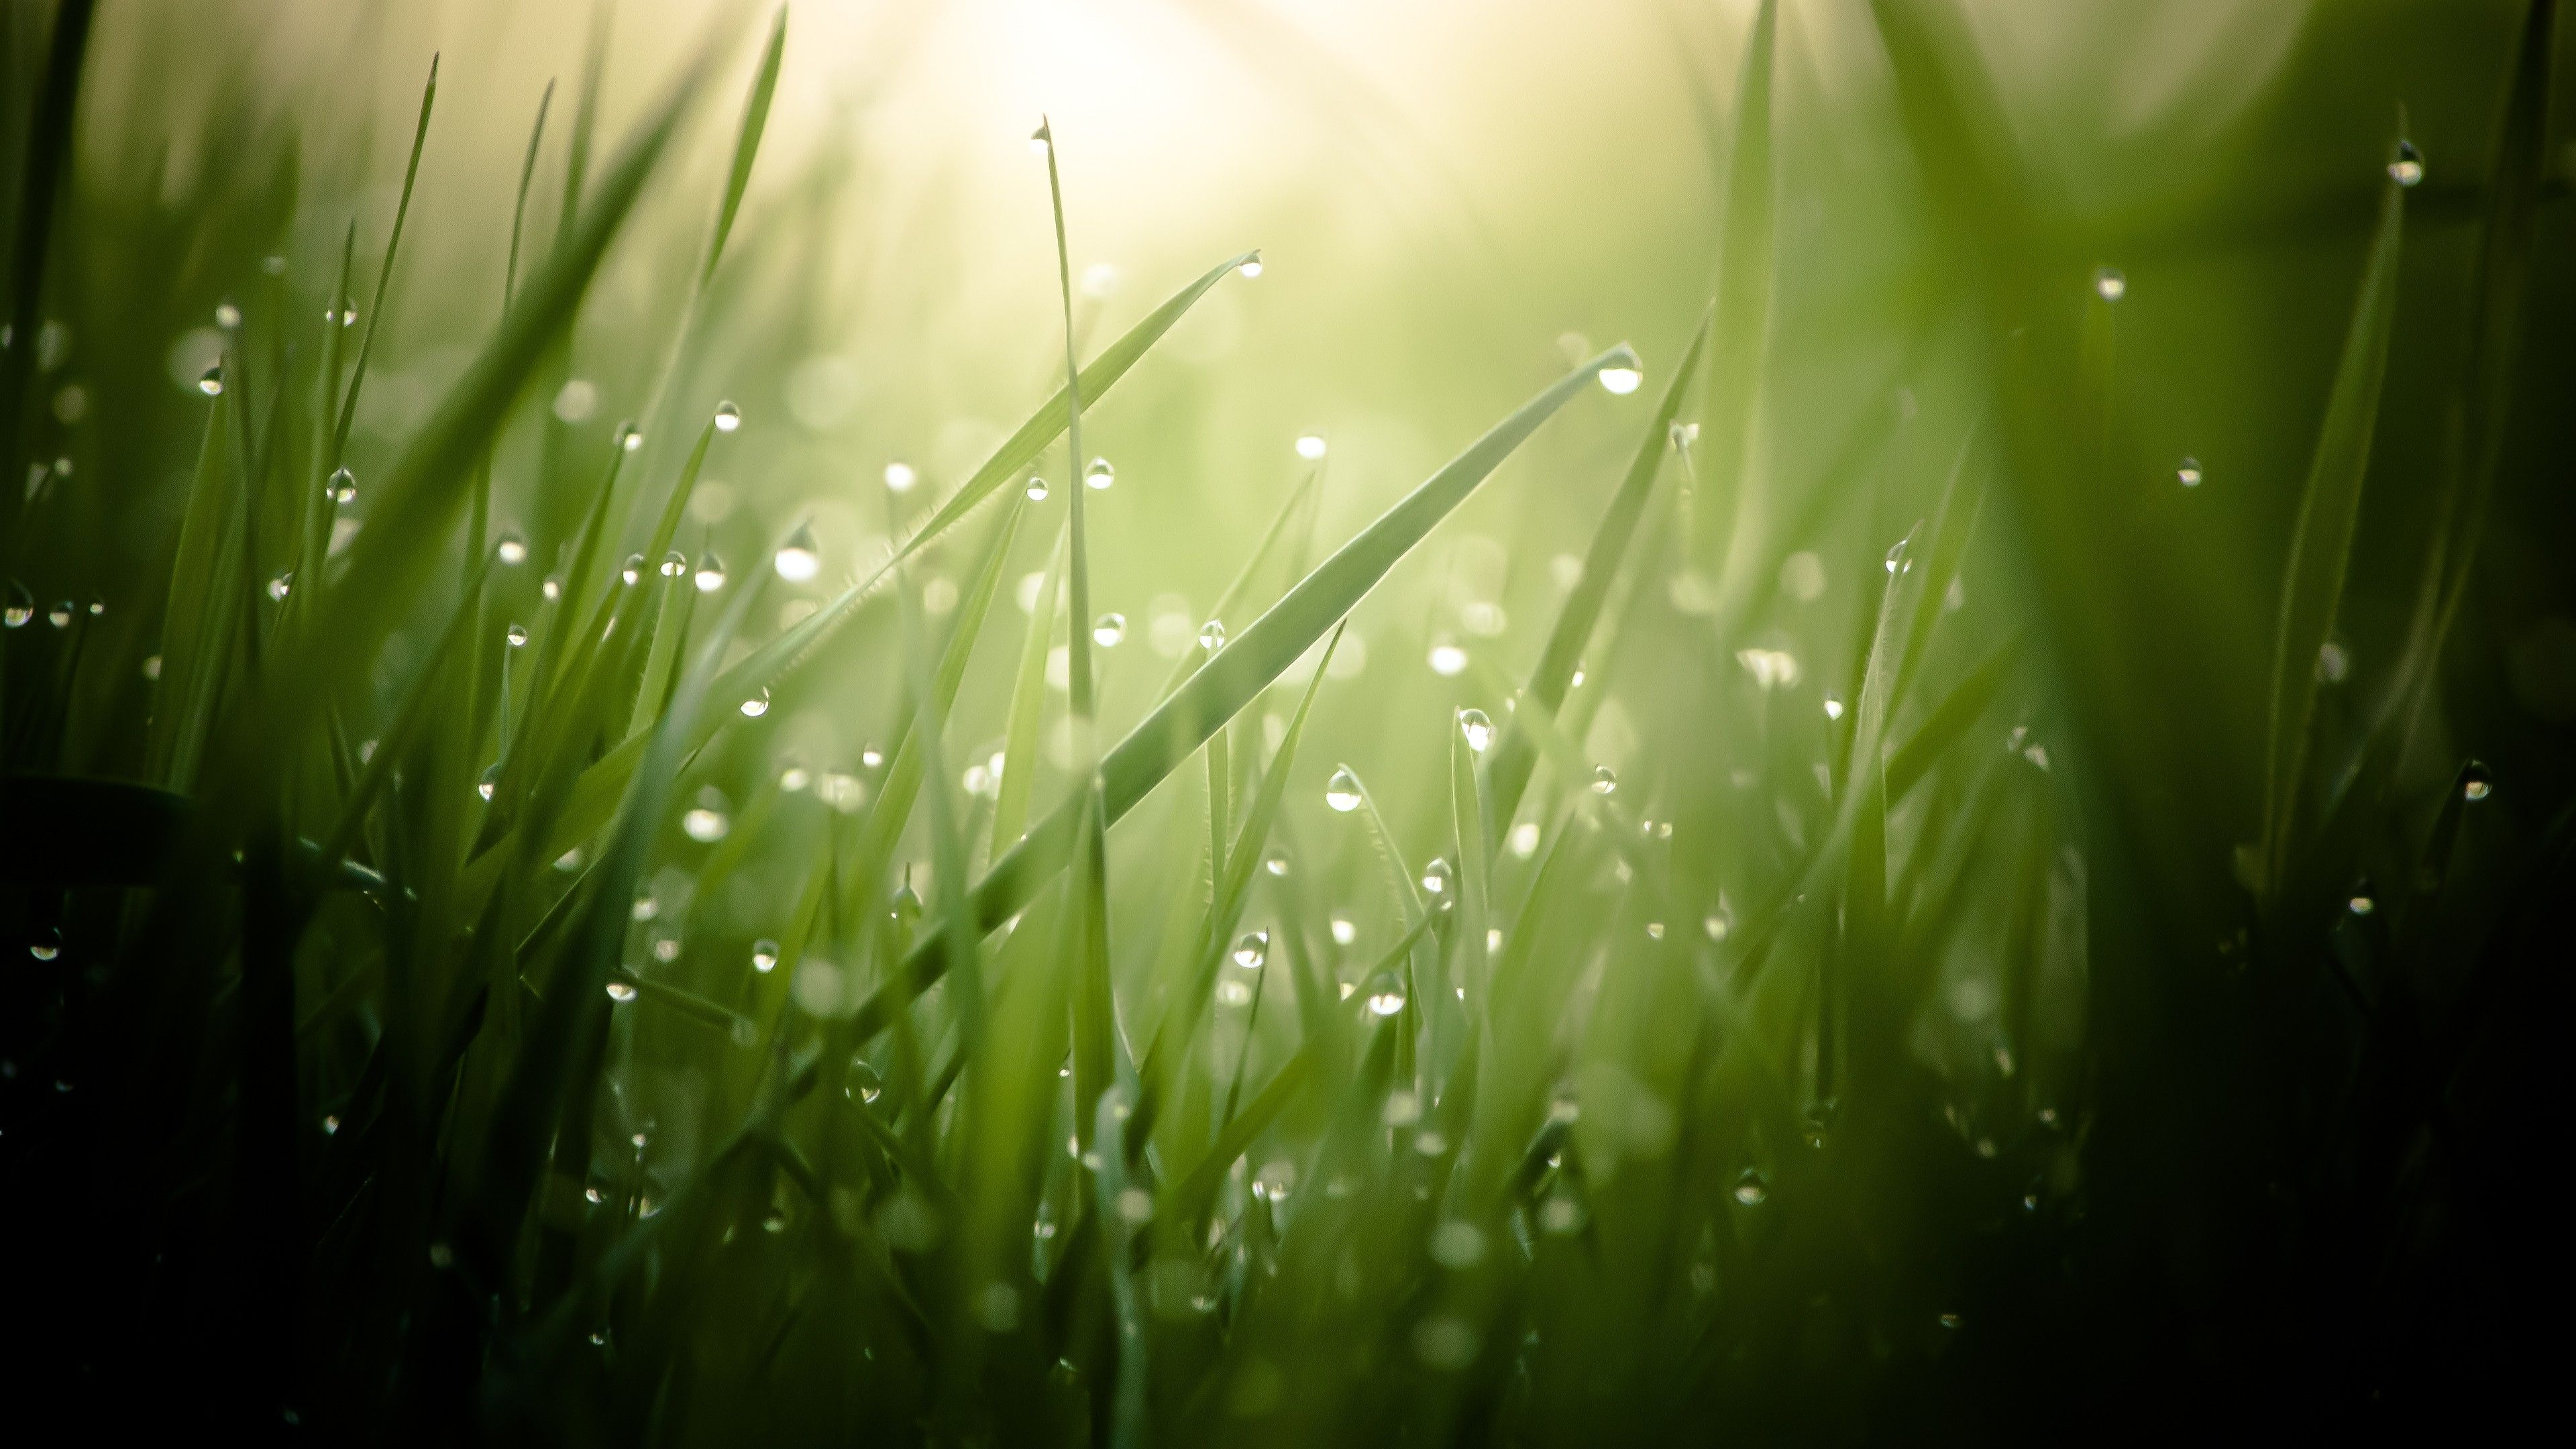 Grass 4k Hd Wallpaper Green Drops Dew Sun Rays 26146 Nature Wallpaper Scenery Wallpaper Green Nature Wallpaper